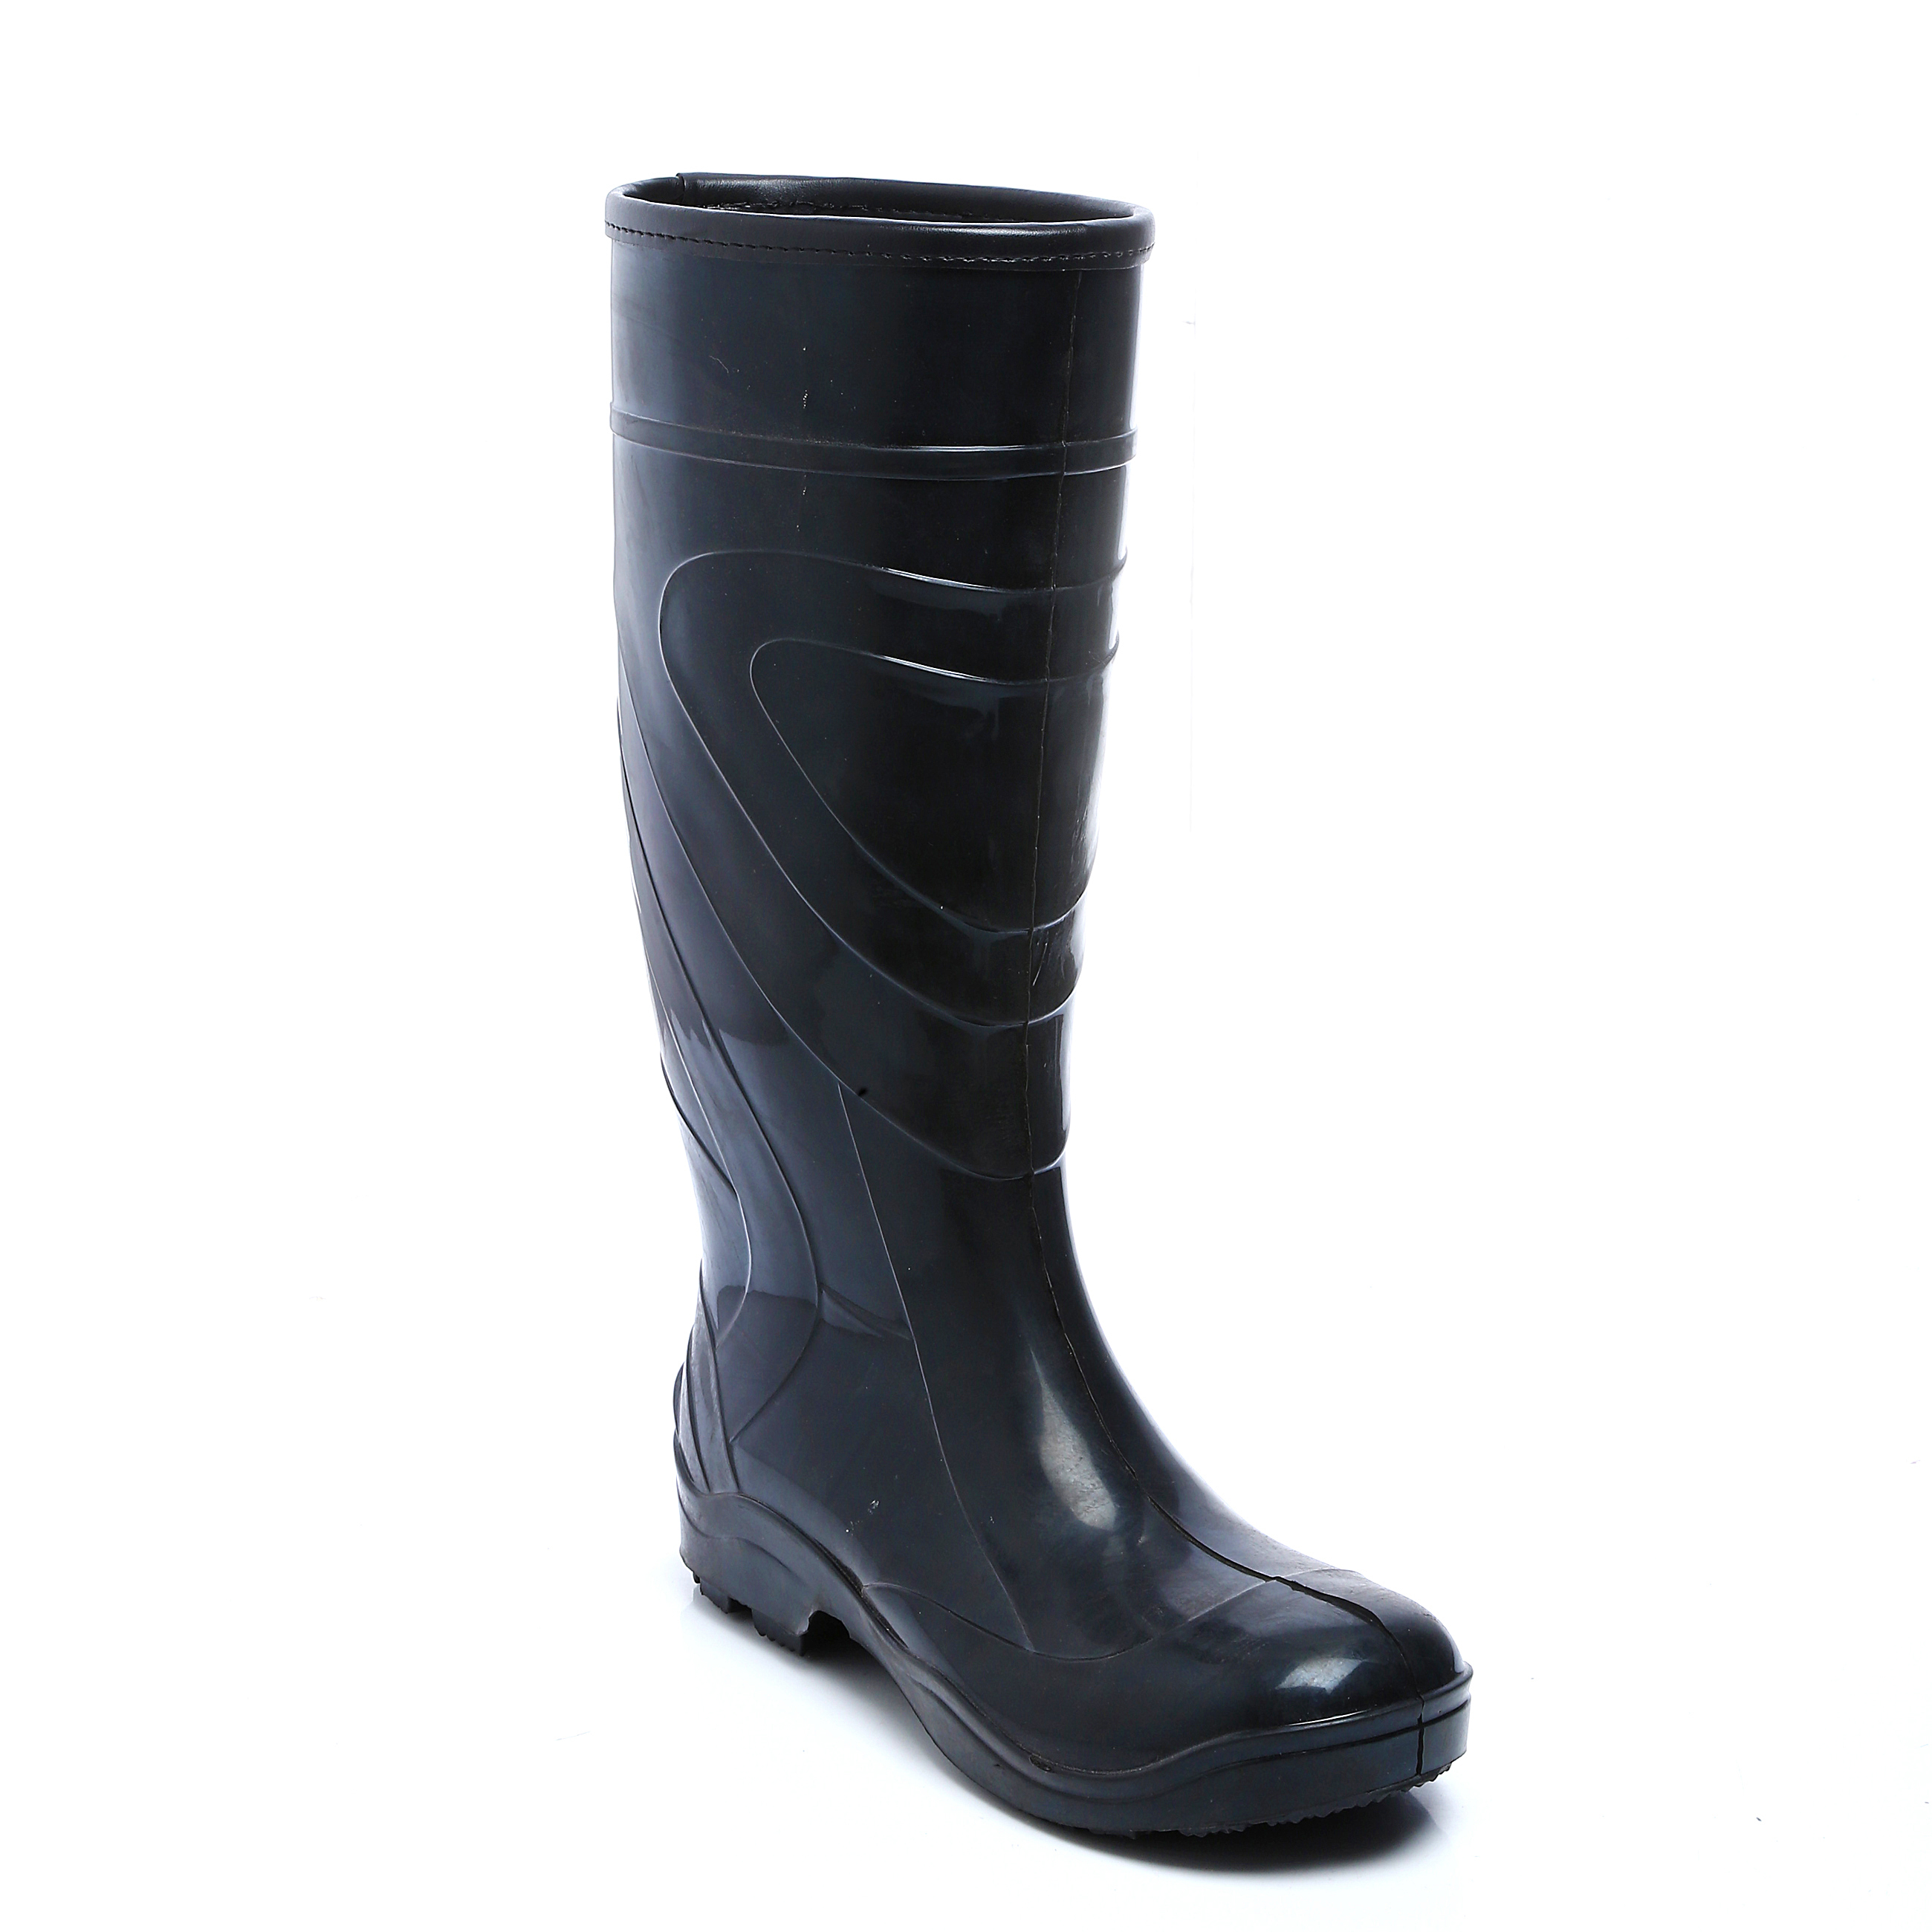 Rubber Safety Gumboots